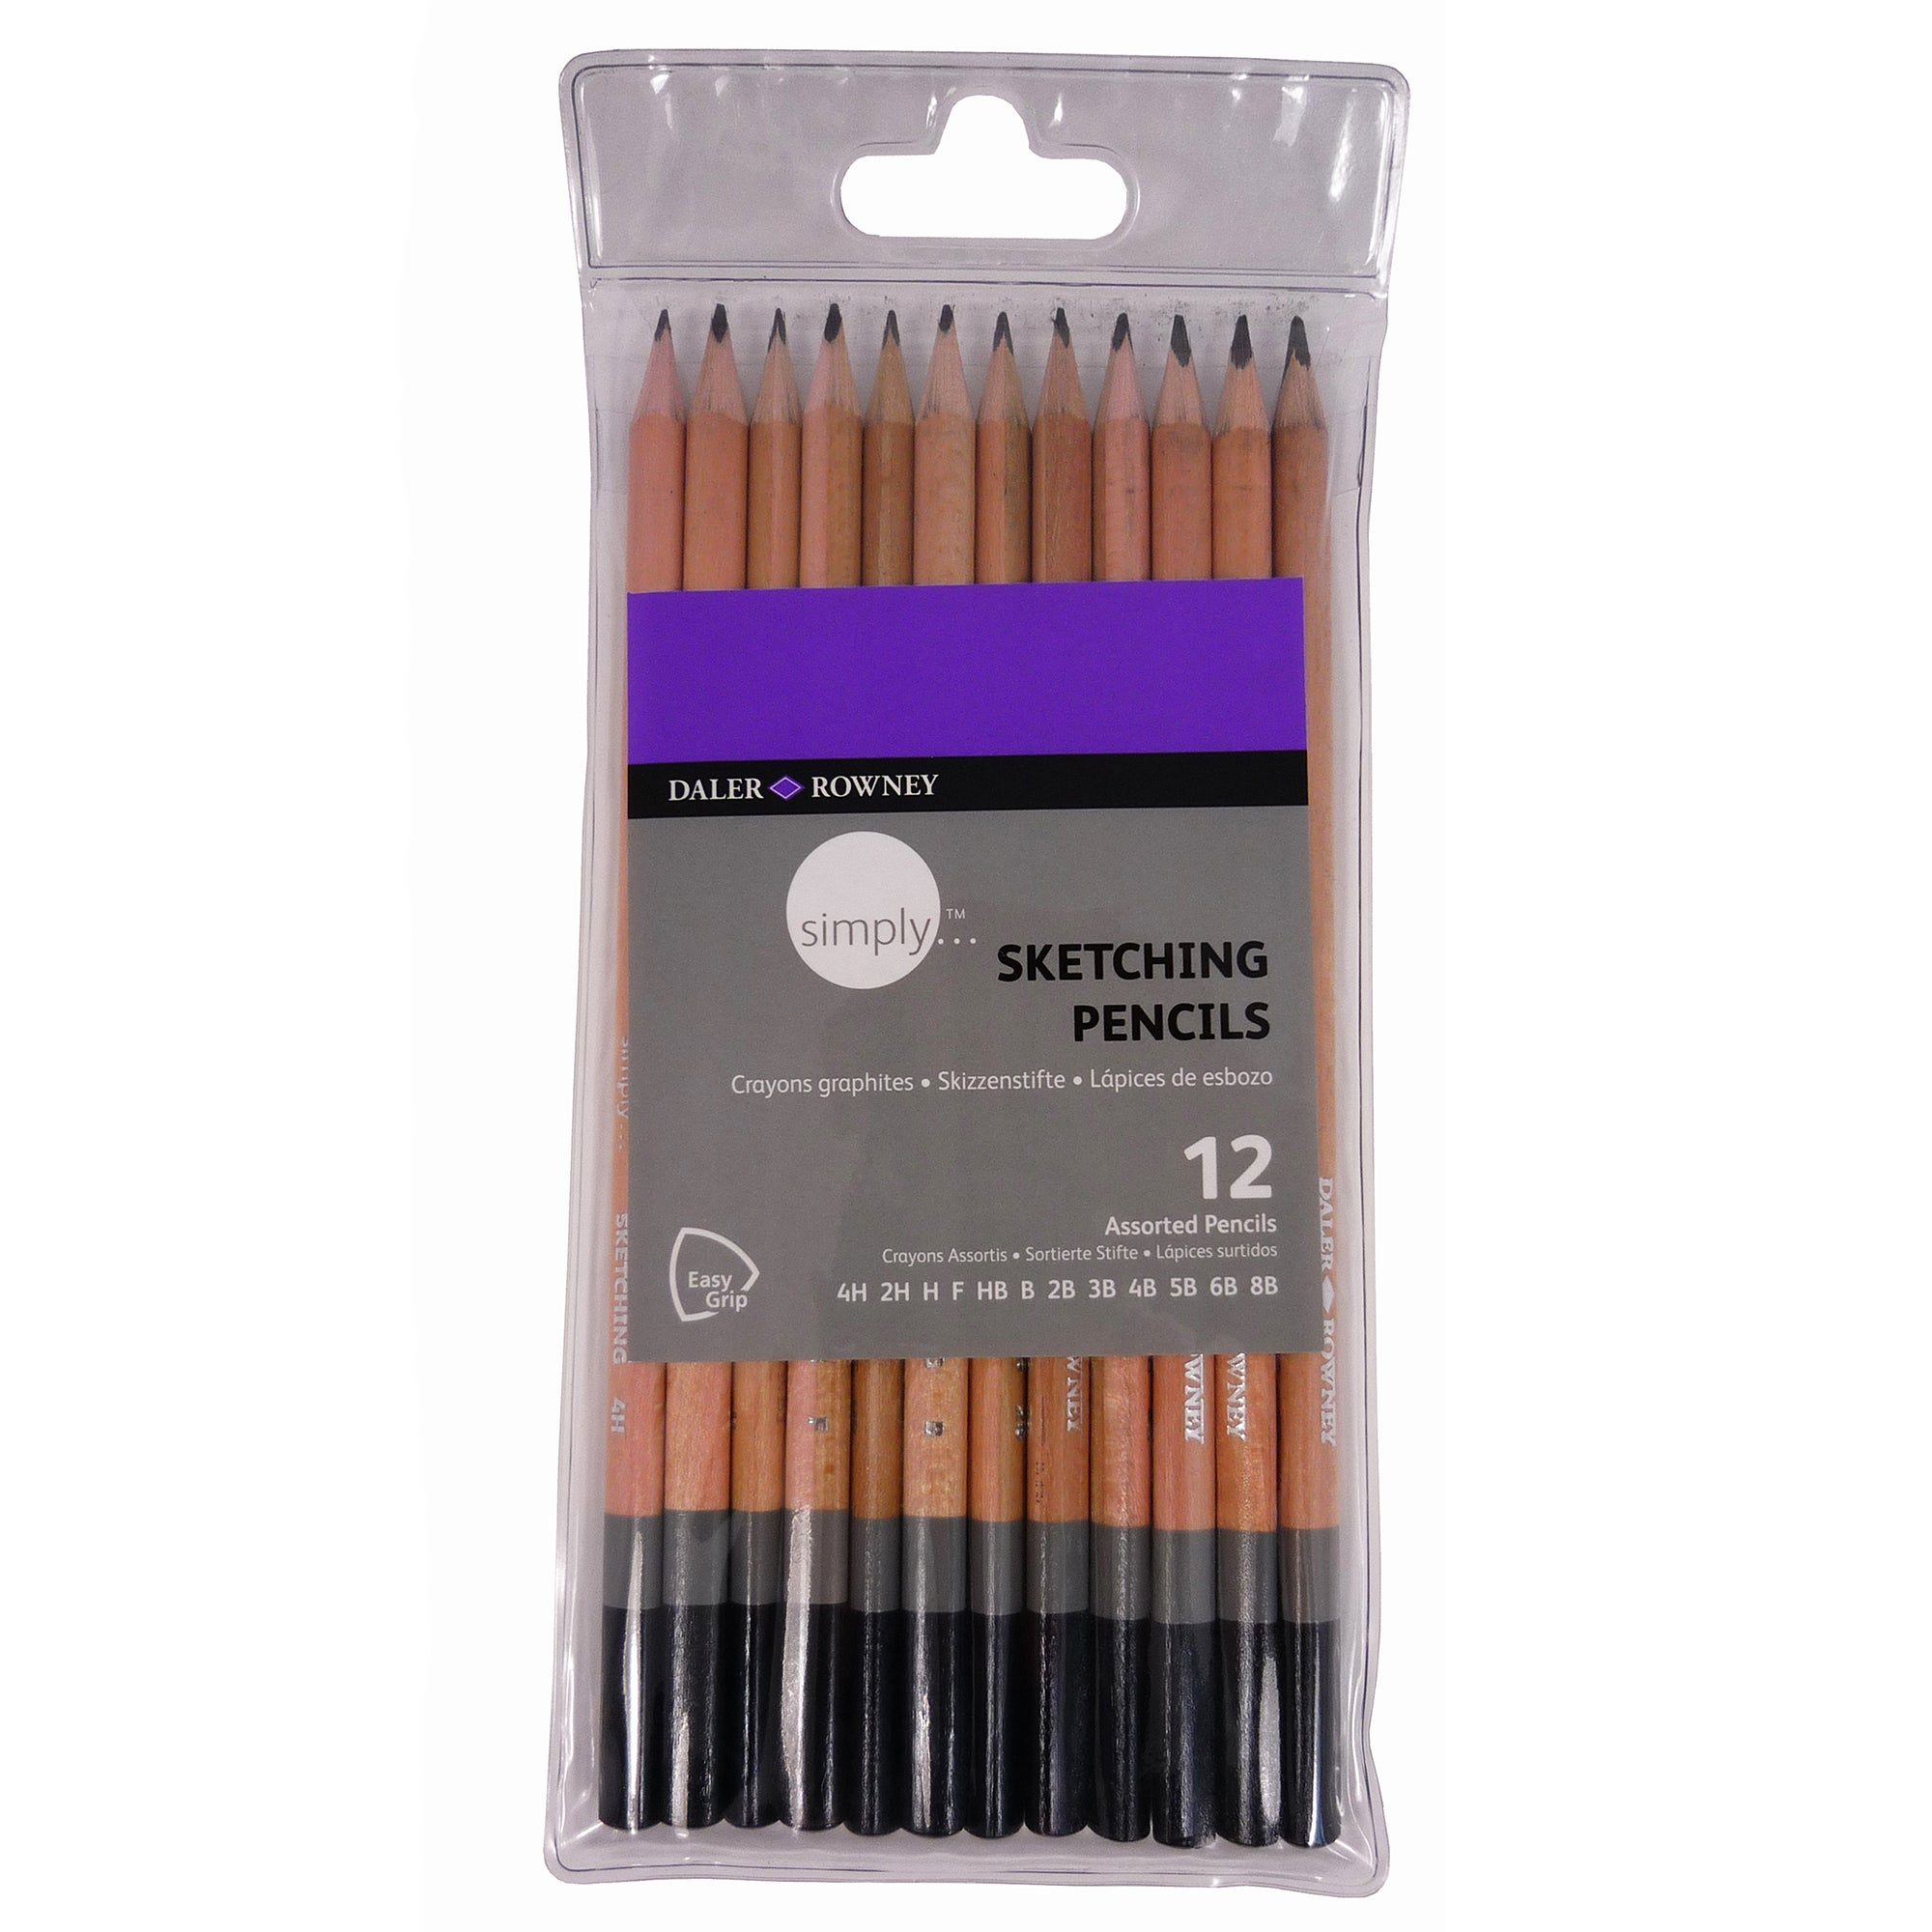 Daler Rowney Simply Sketching Pencils